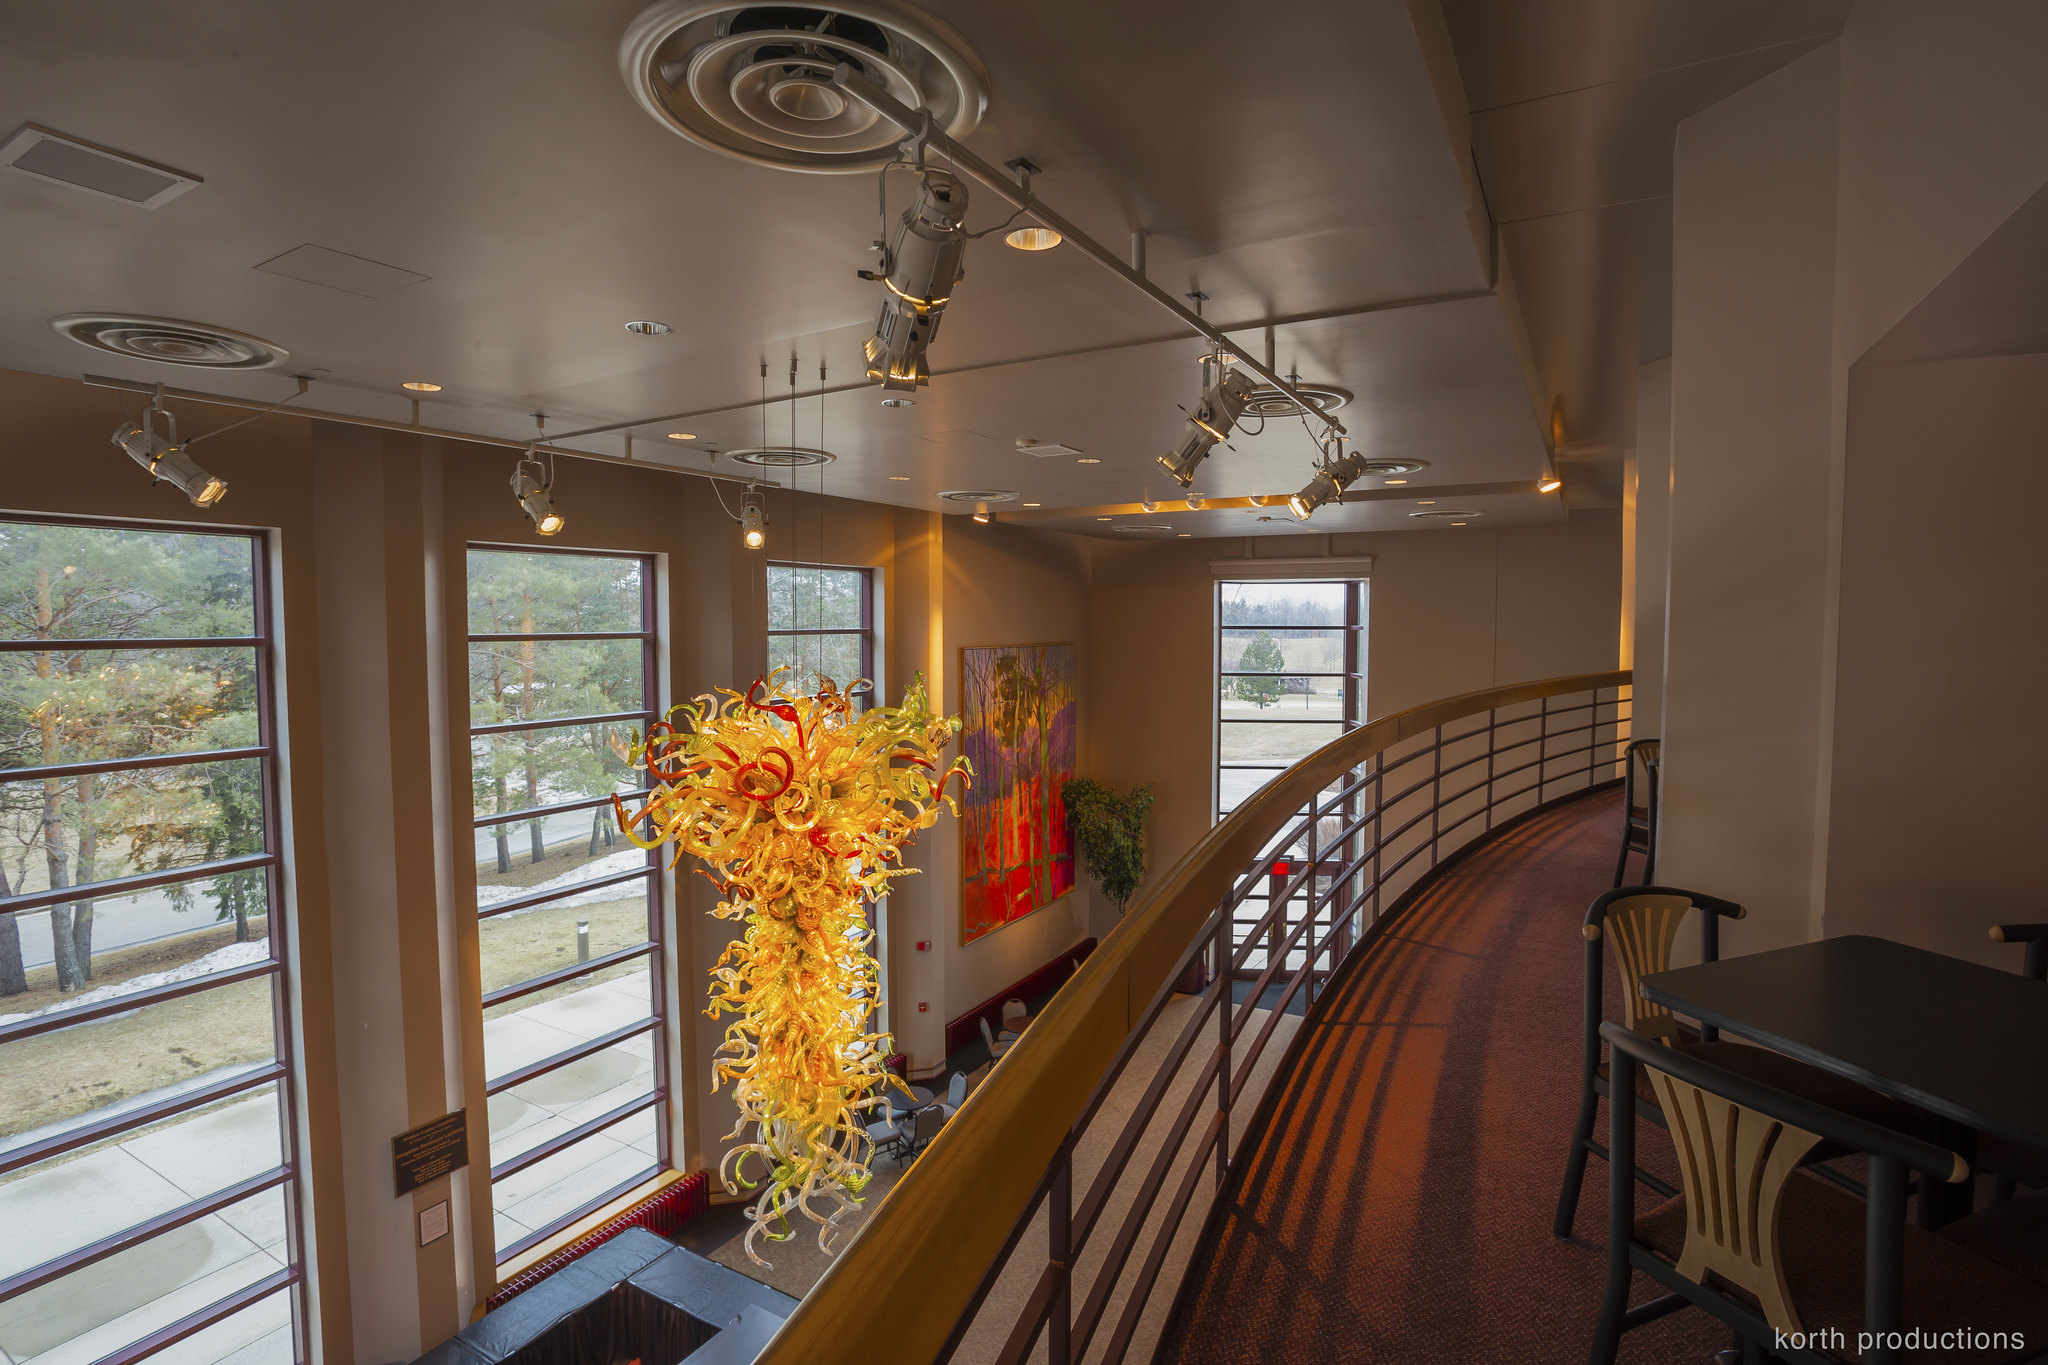 Grand Foyer & Orchestra Lobby